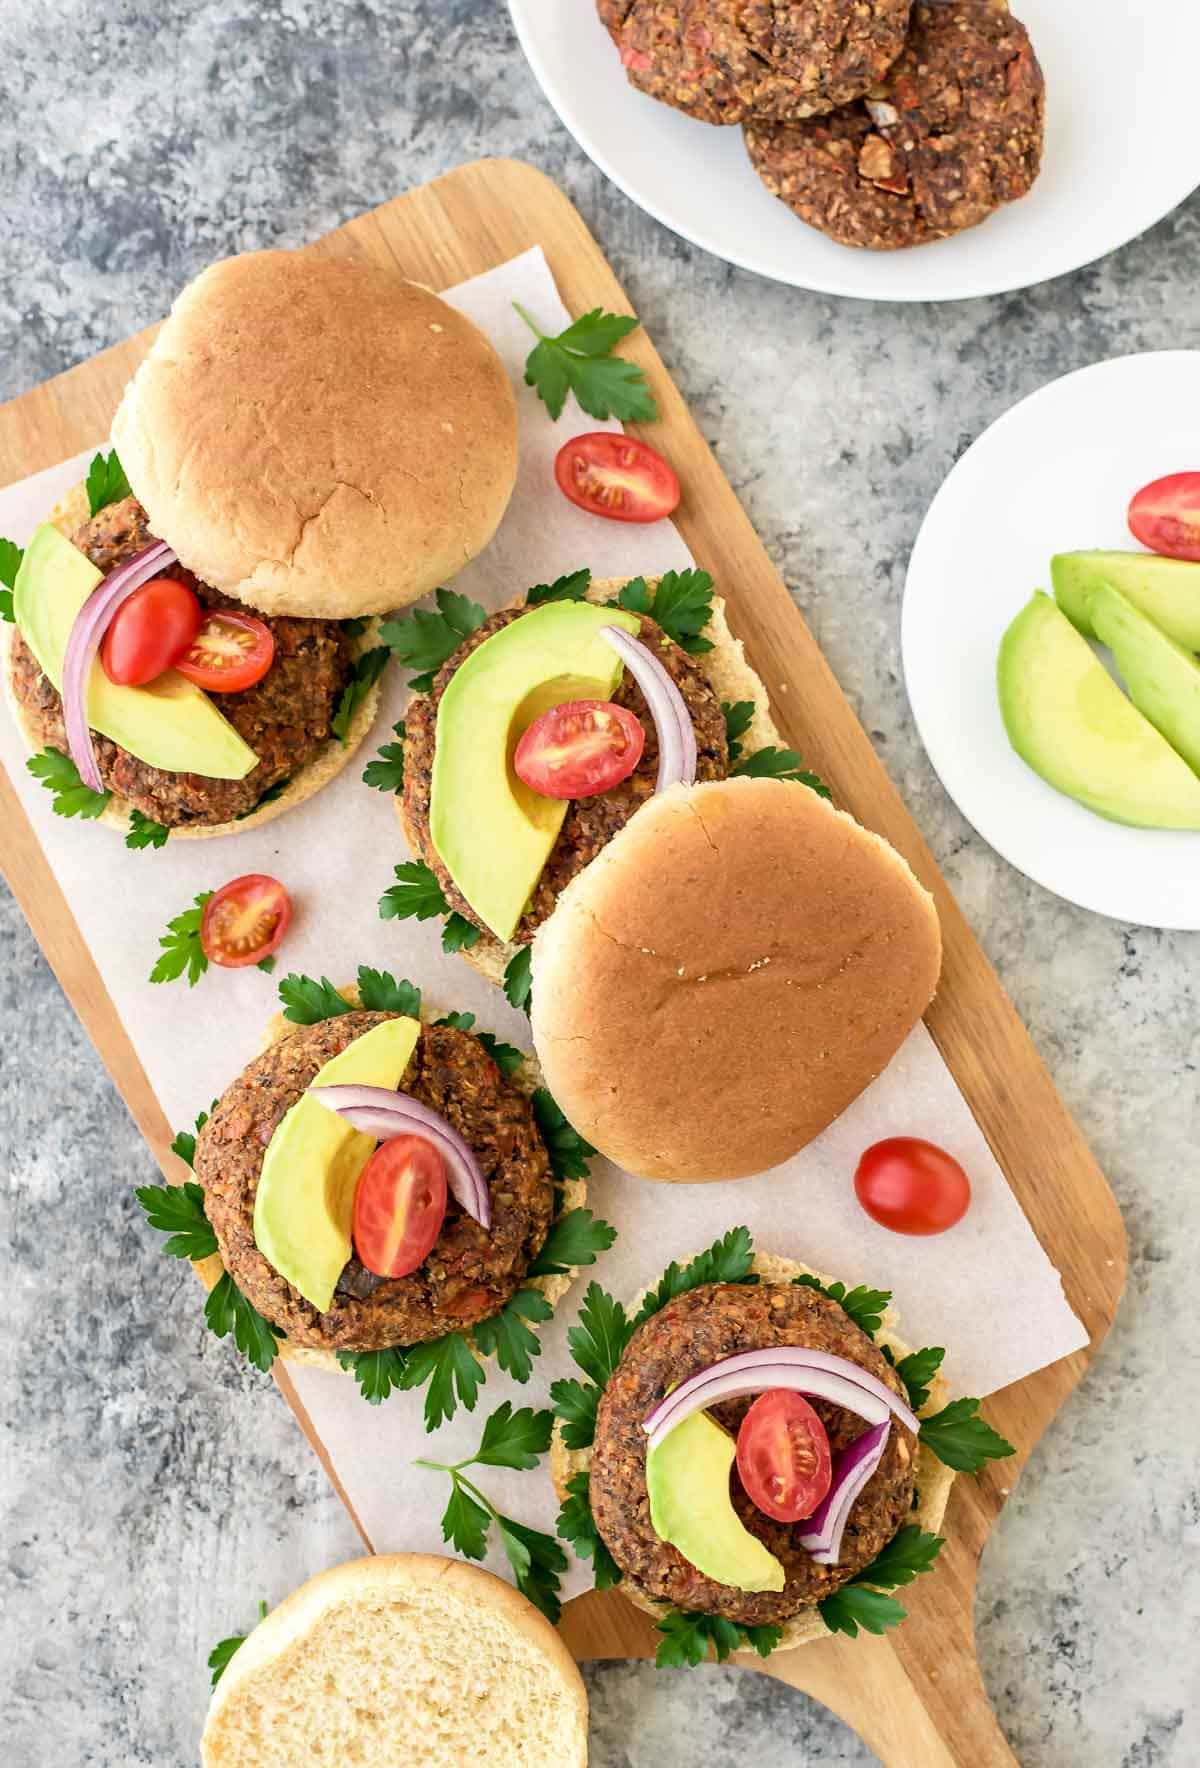 Packed with protein, fiber, omega-3s, and YUMMY. This is the BEST Black Bean Burger Recipe. Vegan, gluten free, and even my meat-loving husband approved! @wellplated